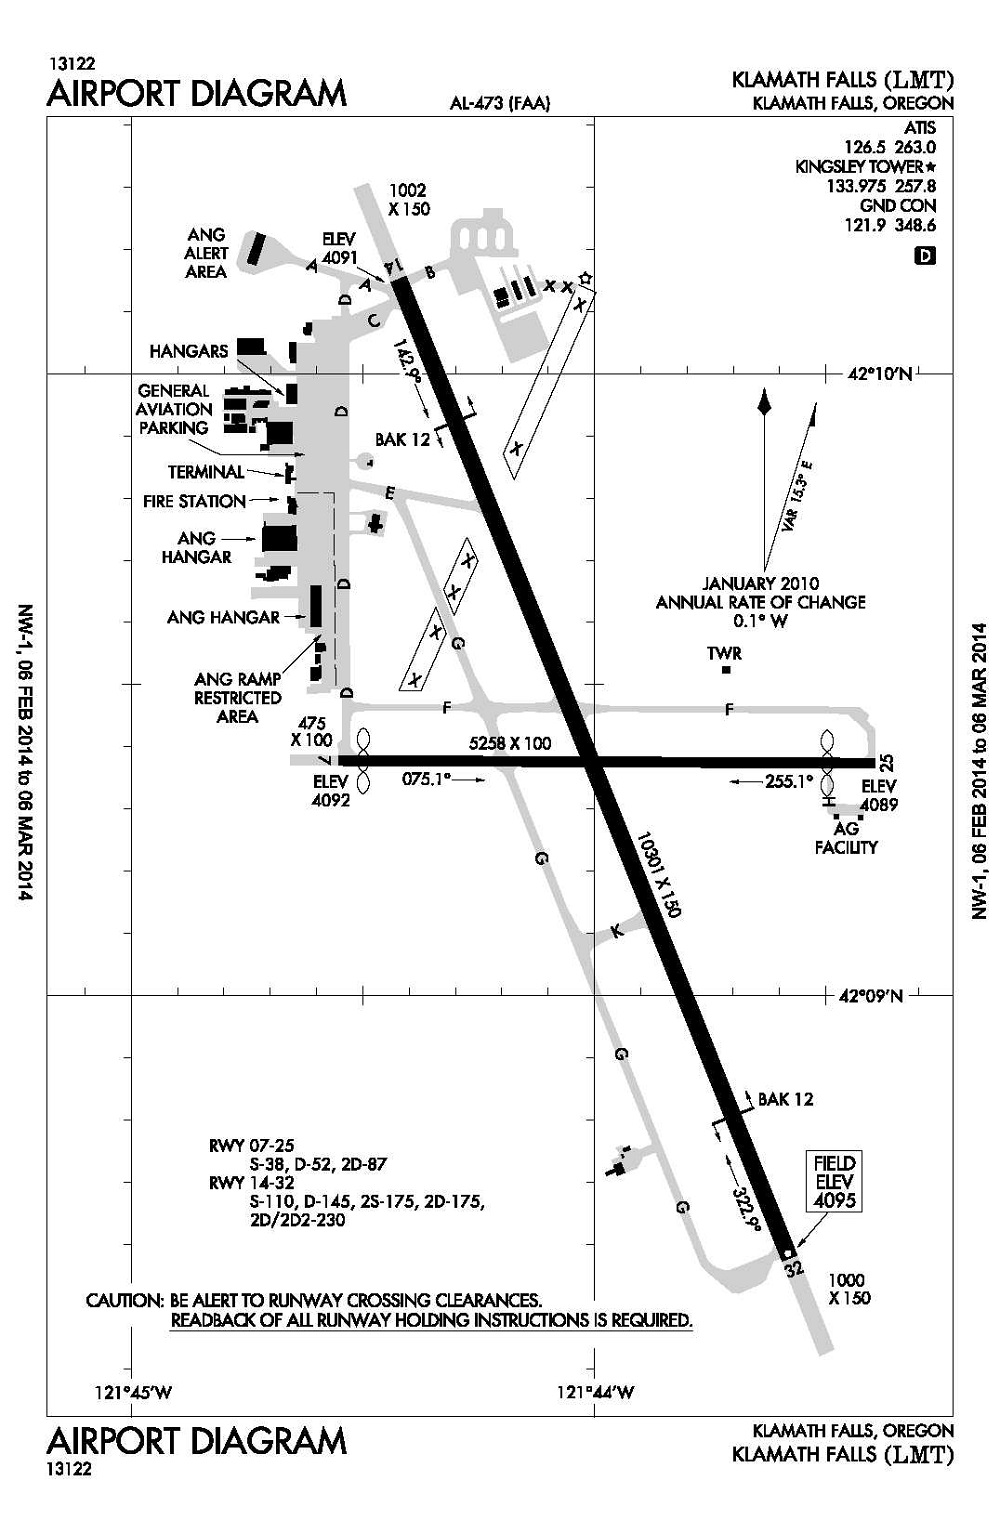 oregon: airport data & links | aviation impact reform kast airport diagram #1